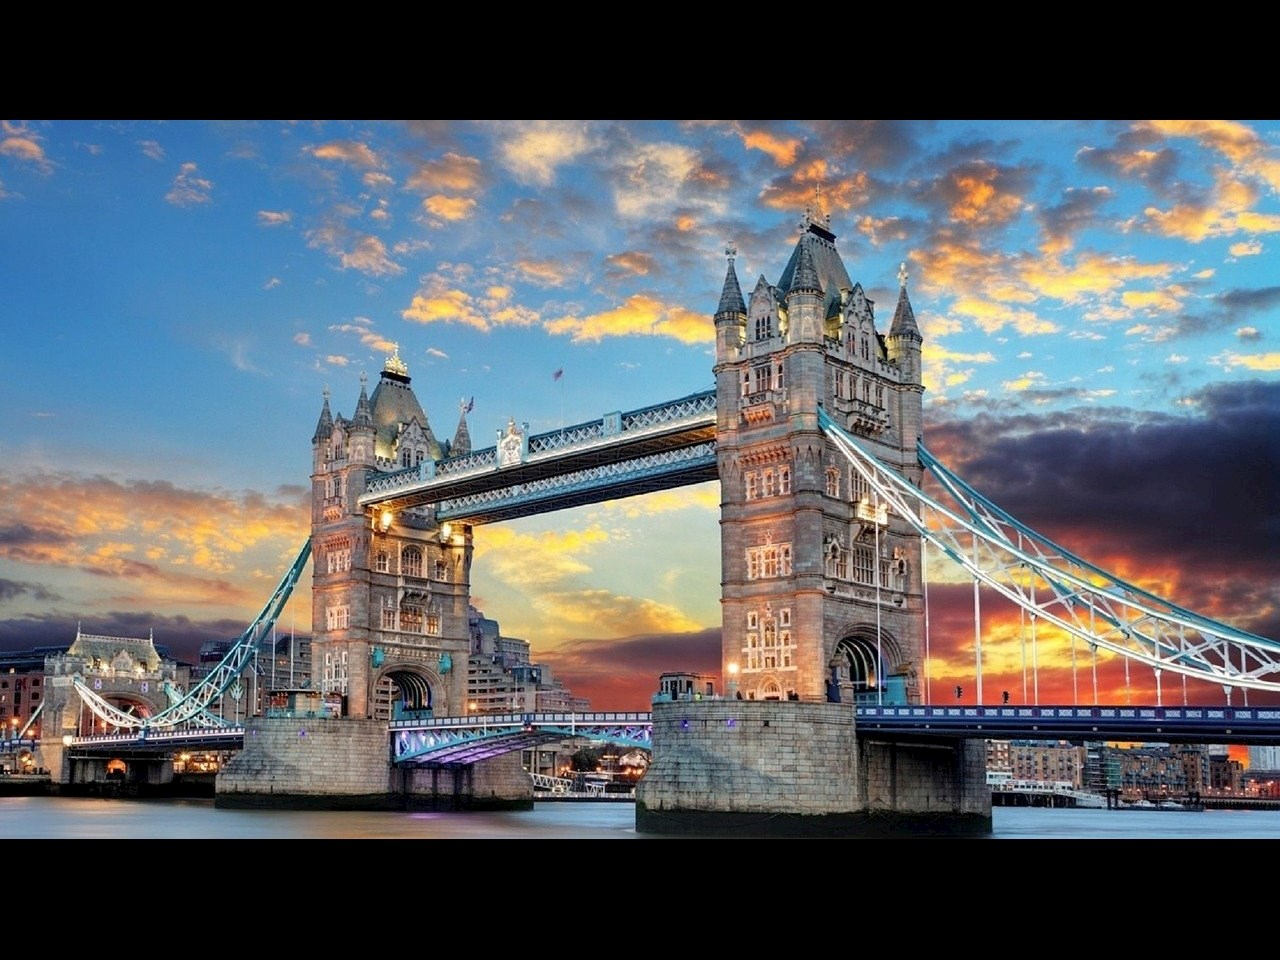 Tower bridge 1237288 1280